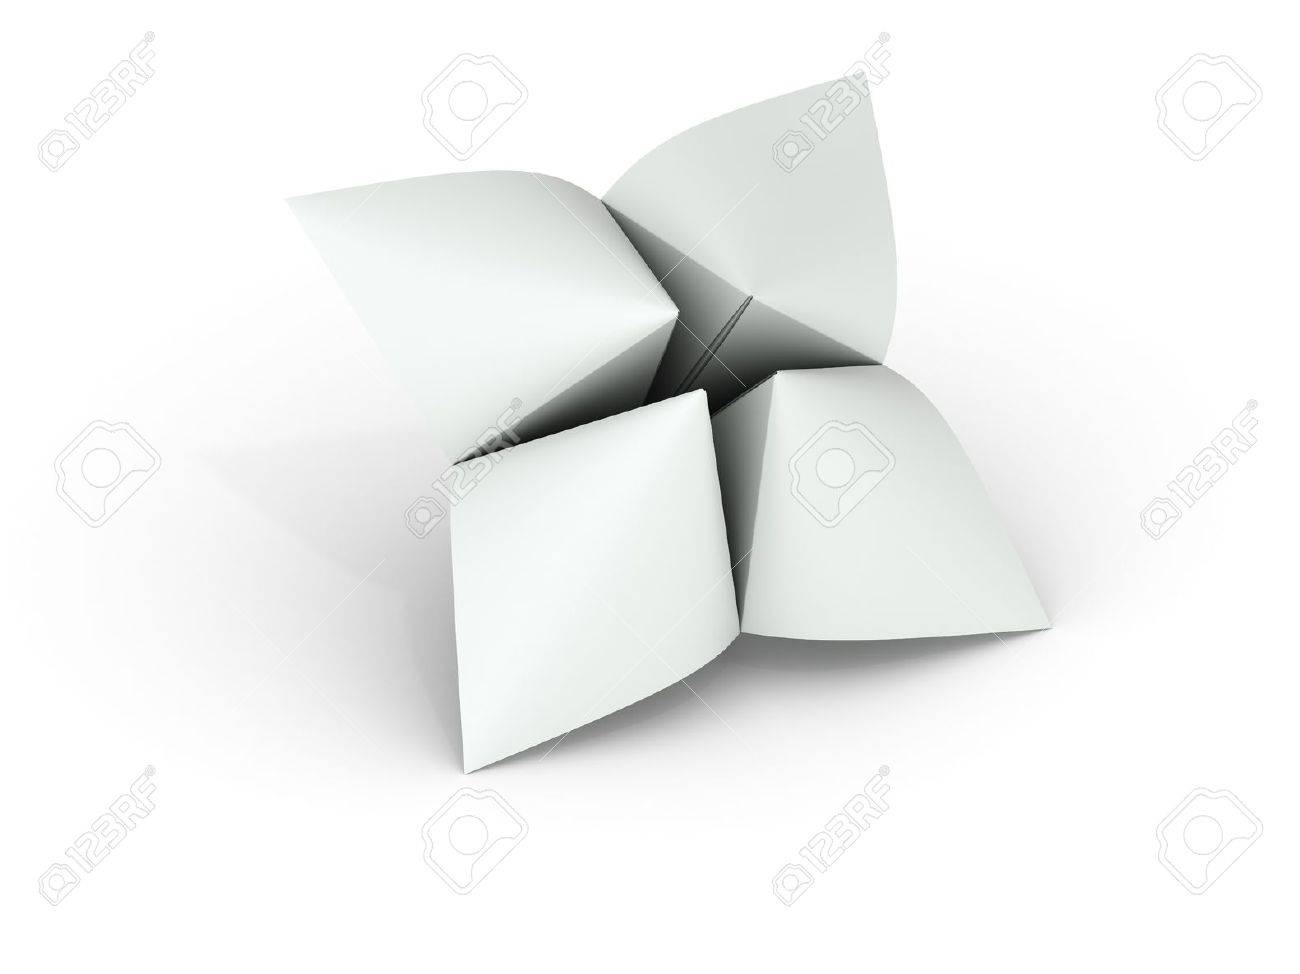 Blank paper fortune teller can be used as illustration for printing or web - 20227437